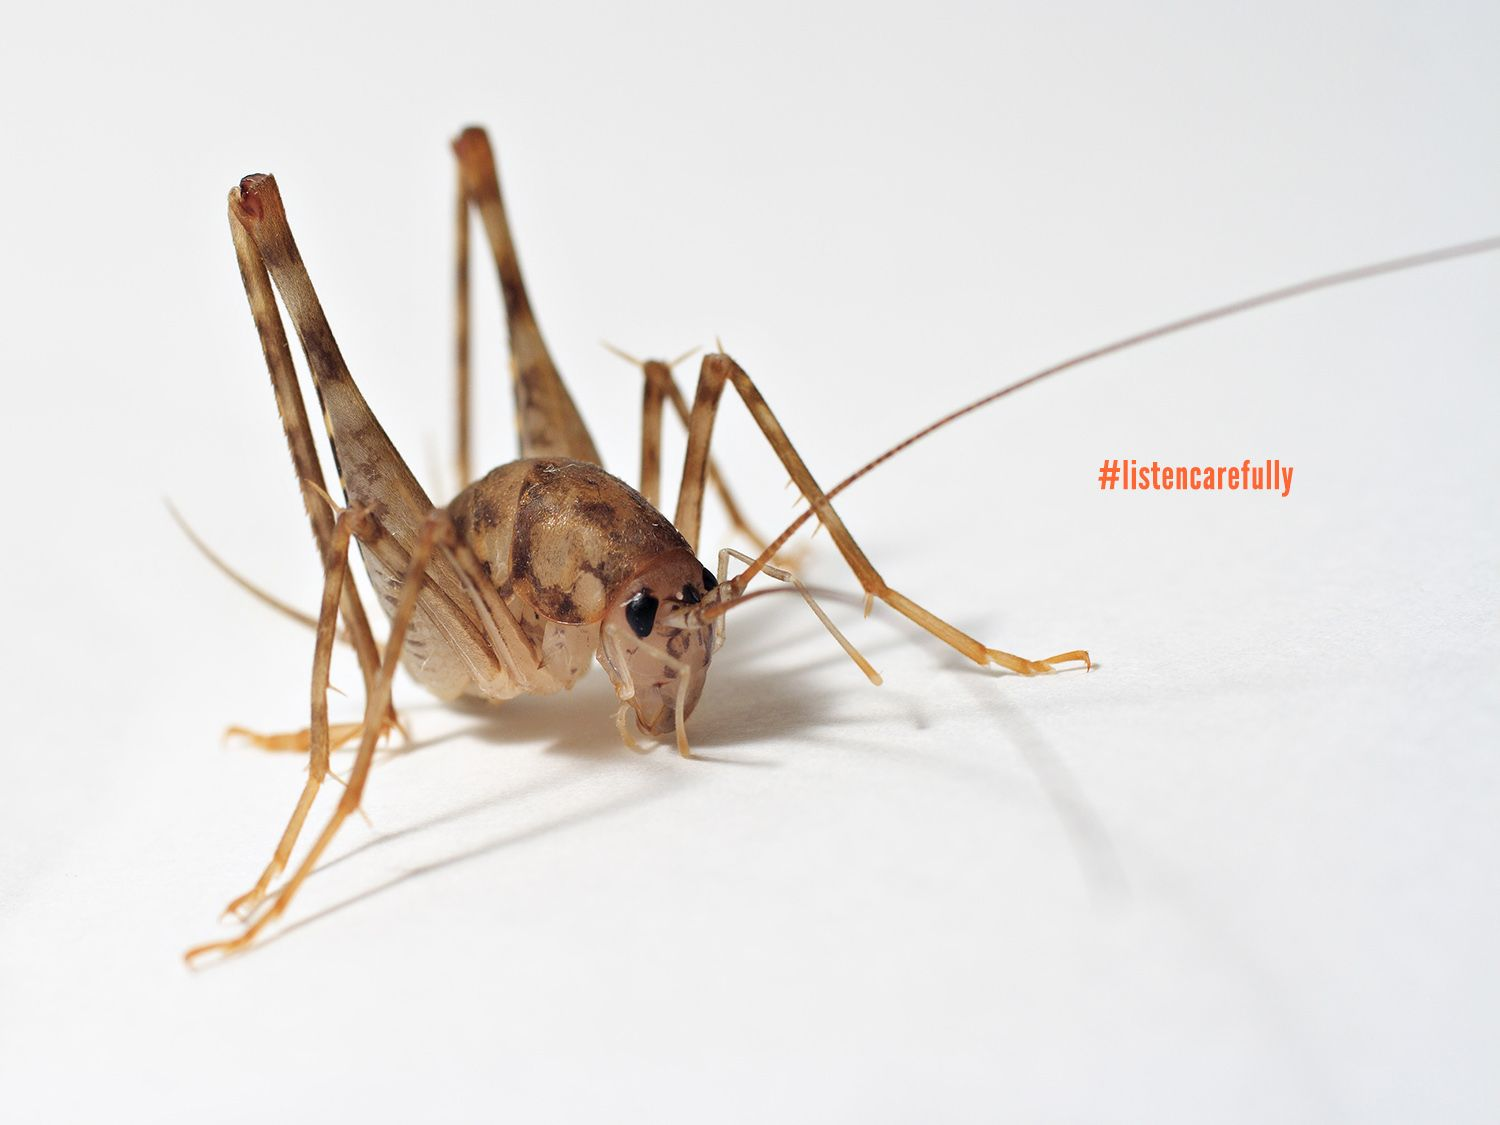 fun fact: crickets have their hearing organs in an unlikely